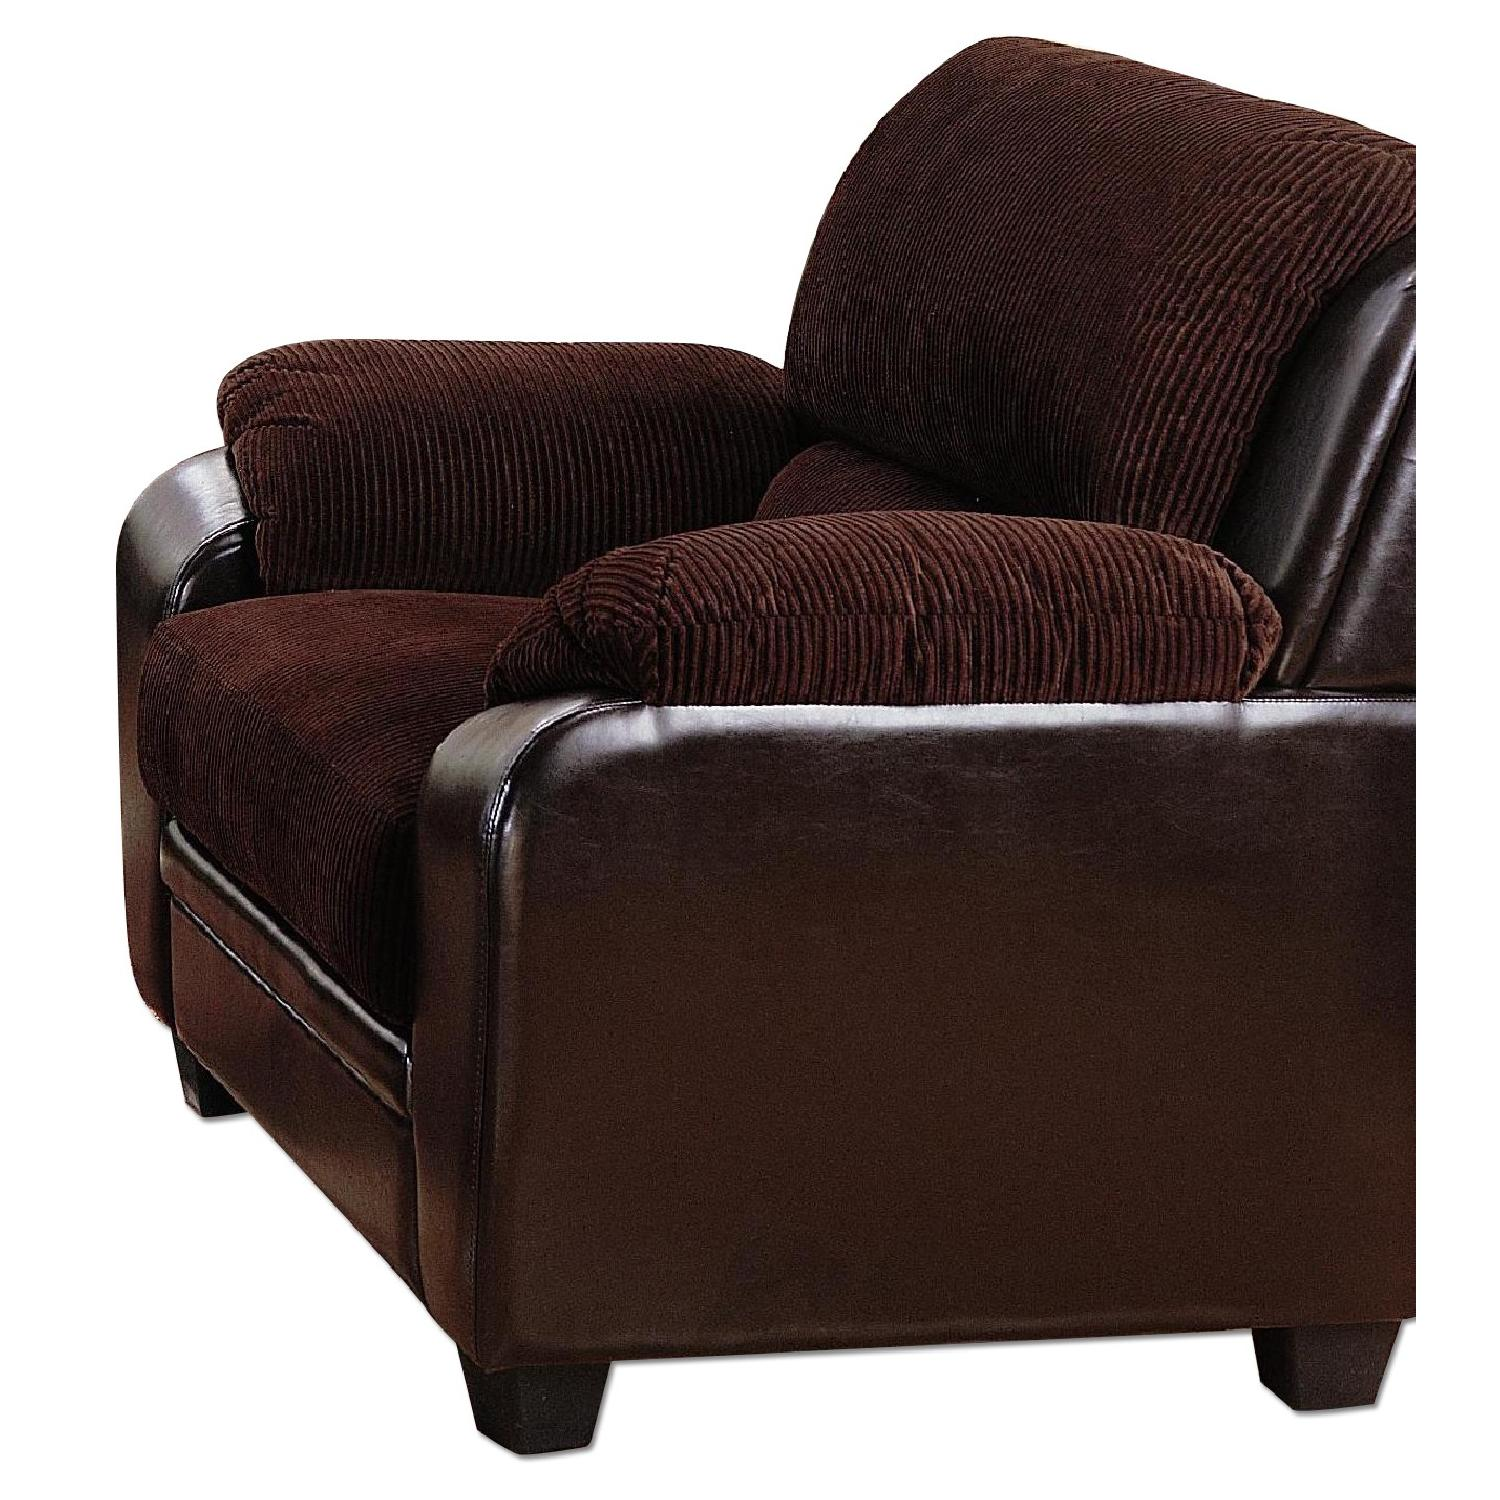 Arm Chair in Brown Corduroy Fabric w Dark Brown PU AptDeco